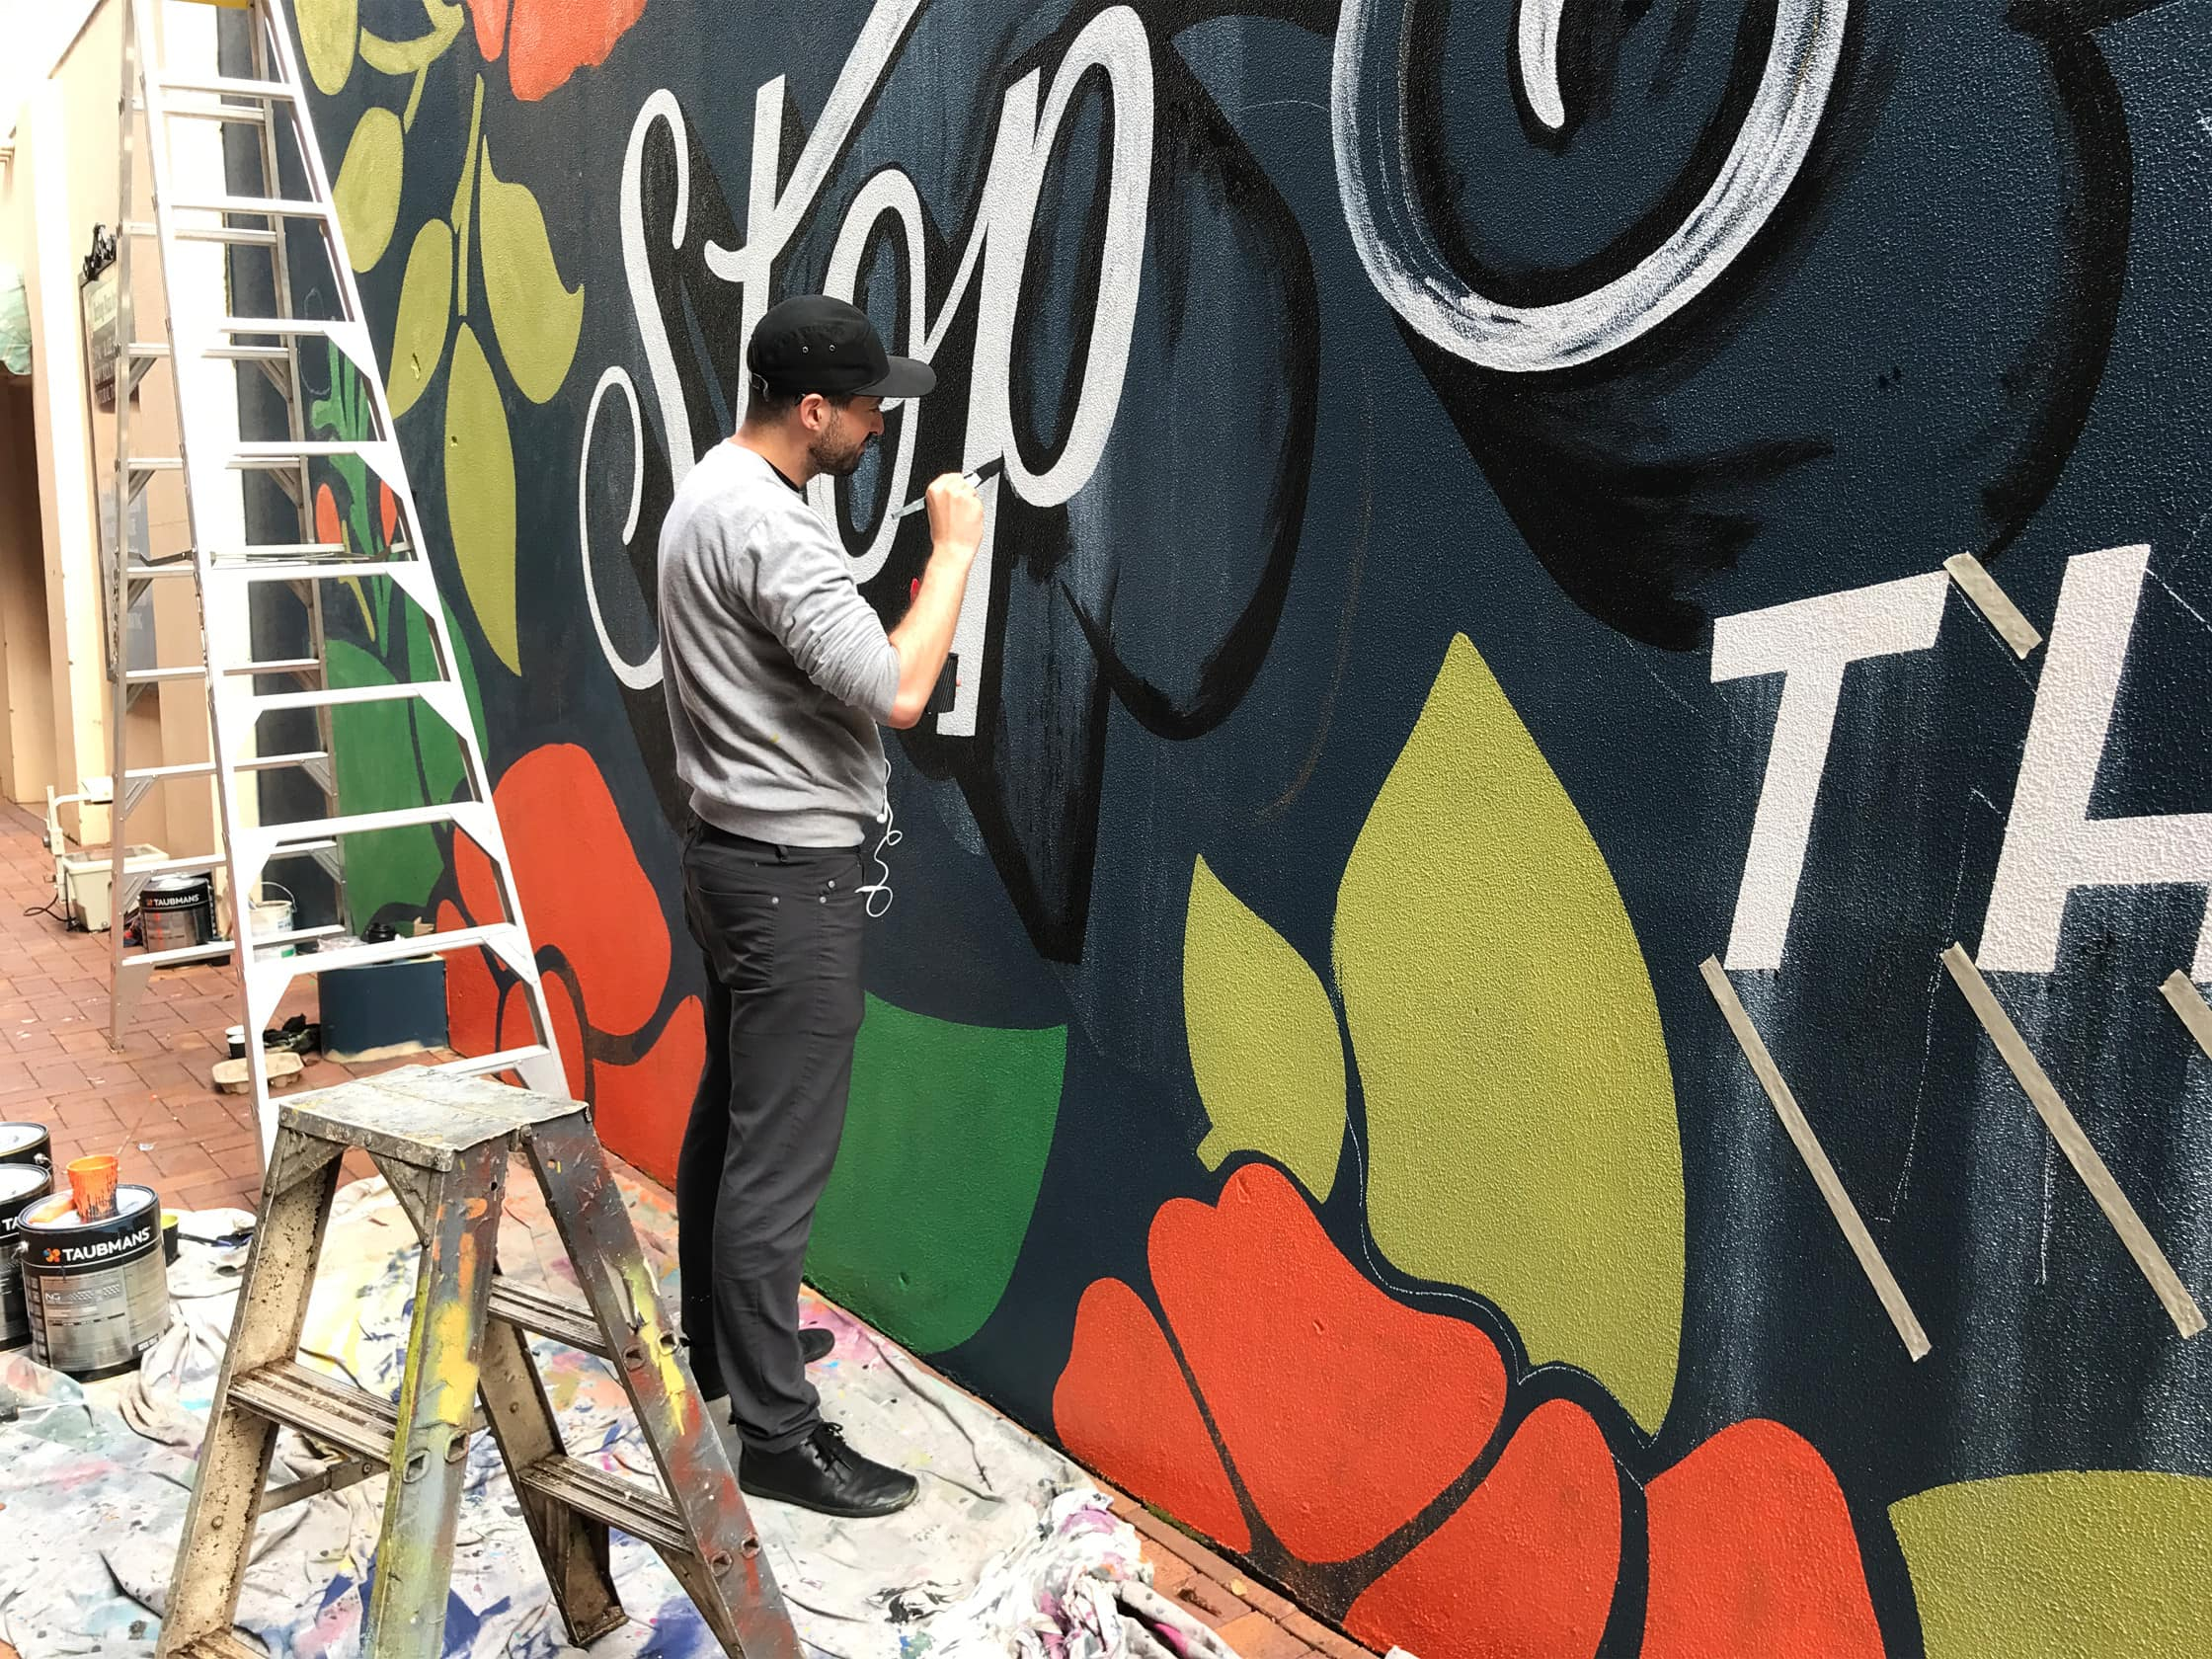 Mural Painting with the Outlier Slim Dungarees in Toowoomba Australia